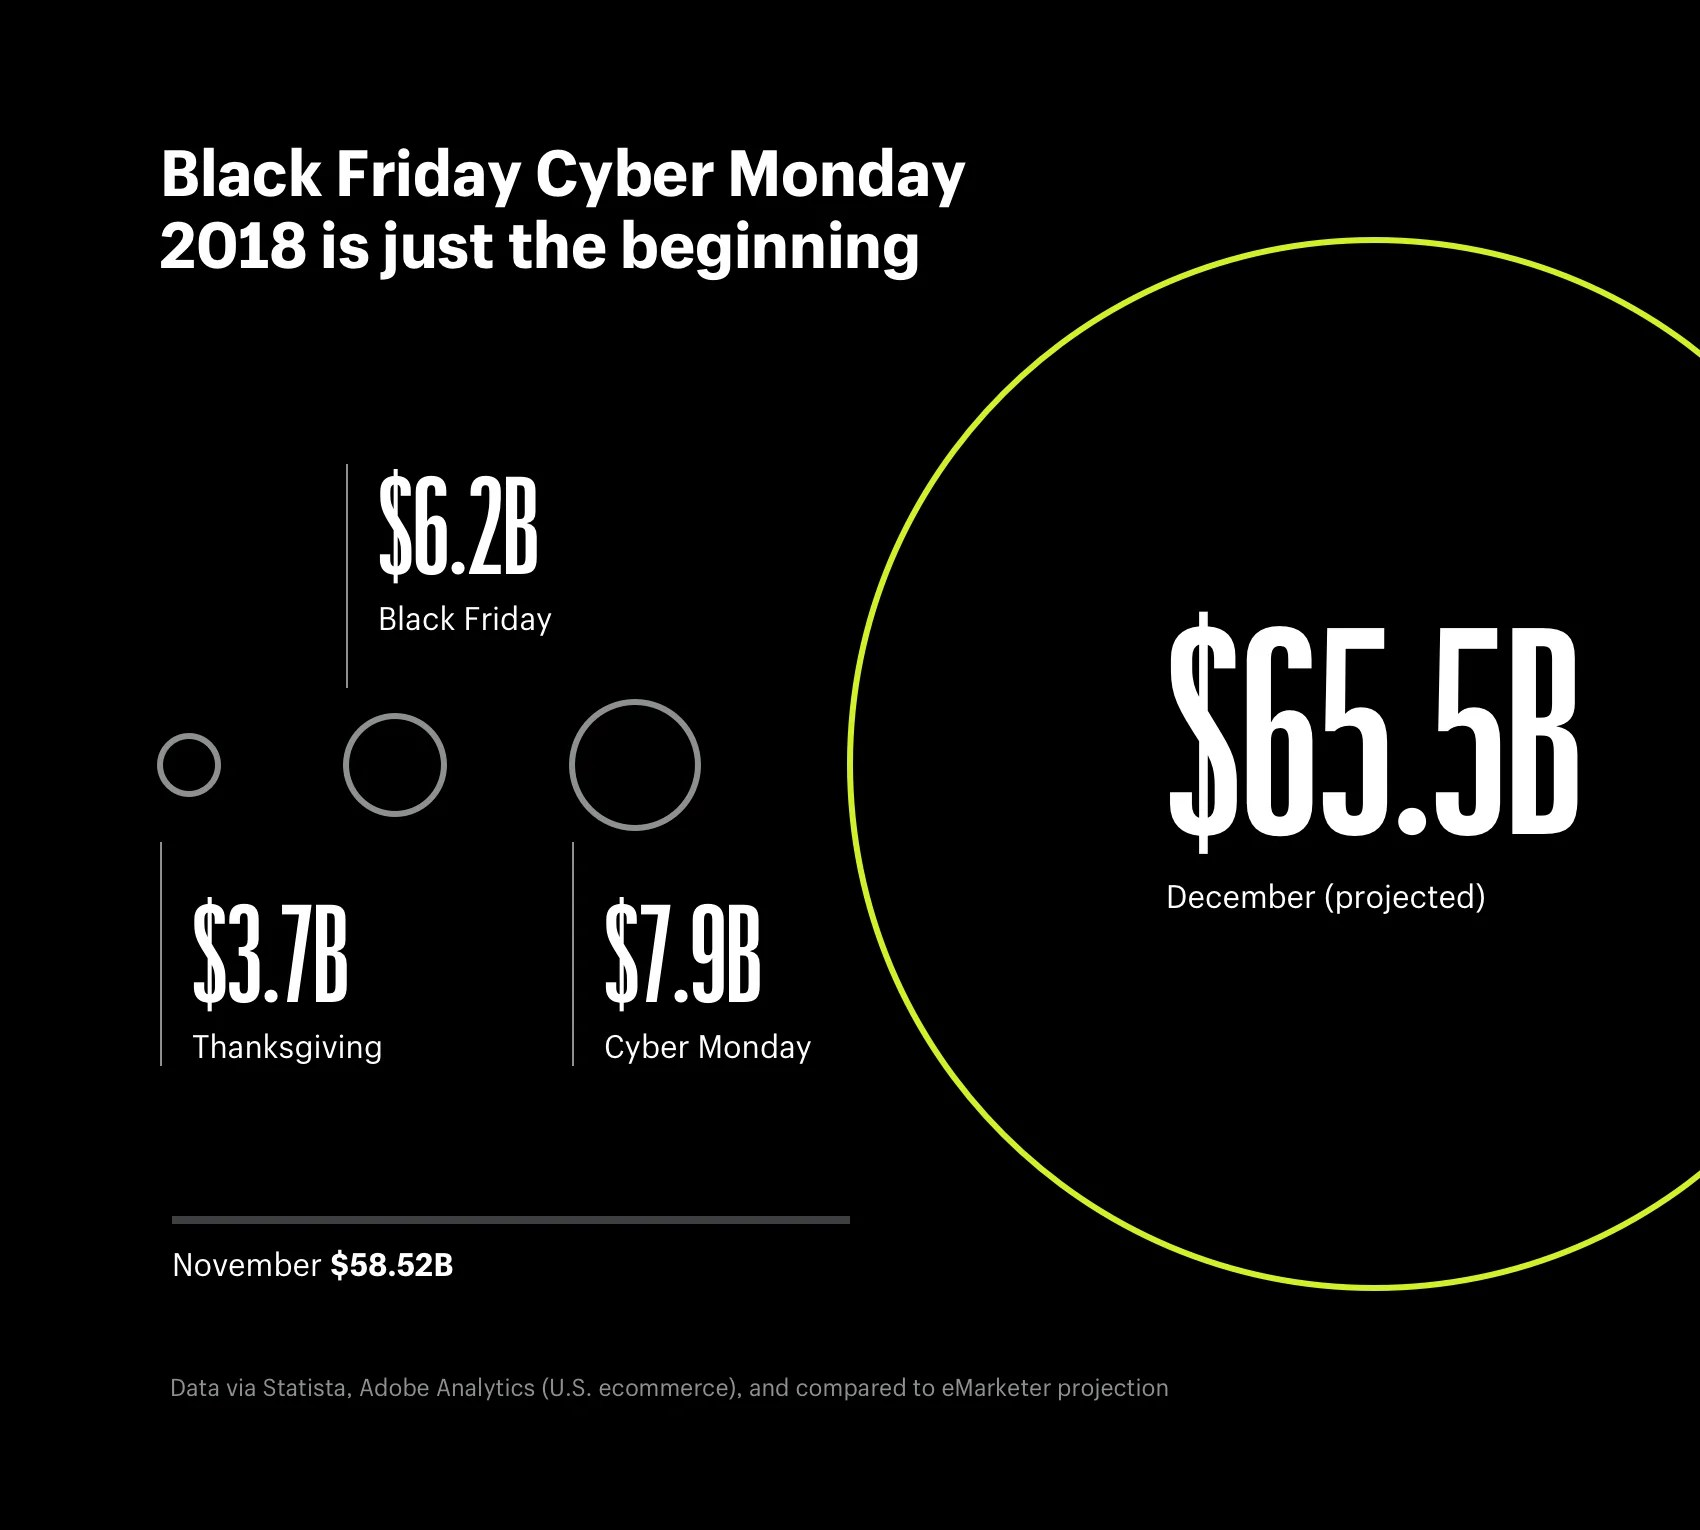 Holiday Shopping Online Trends And Statistics 2018 2017